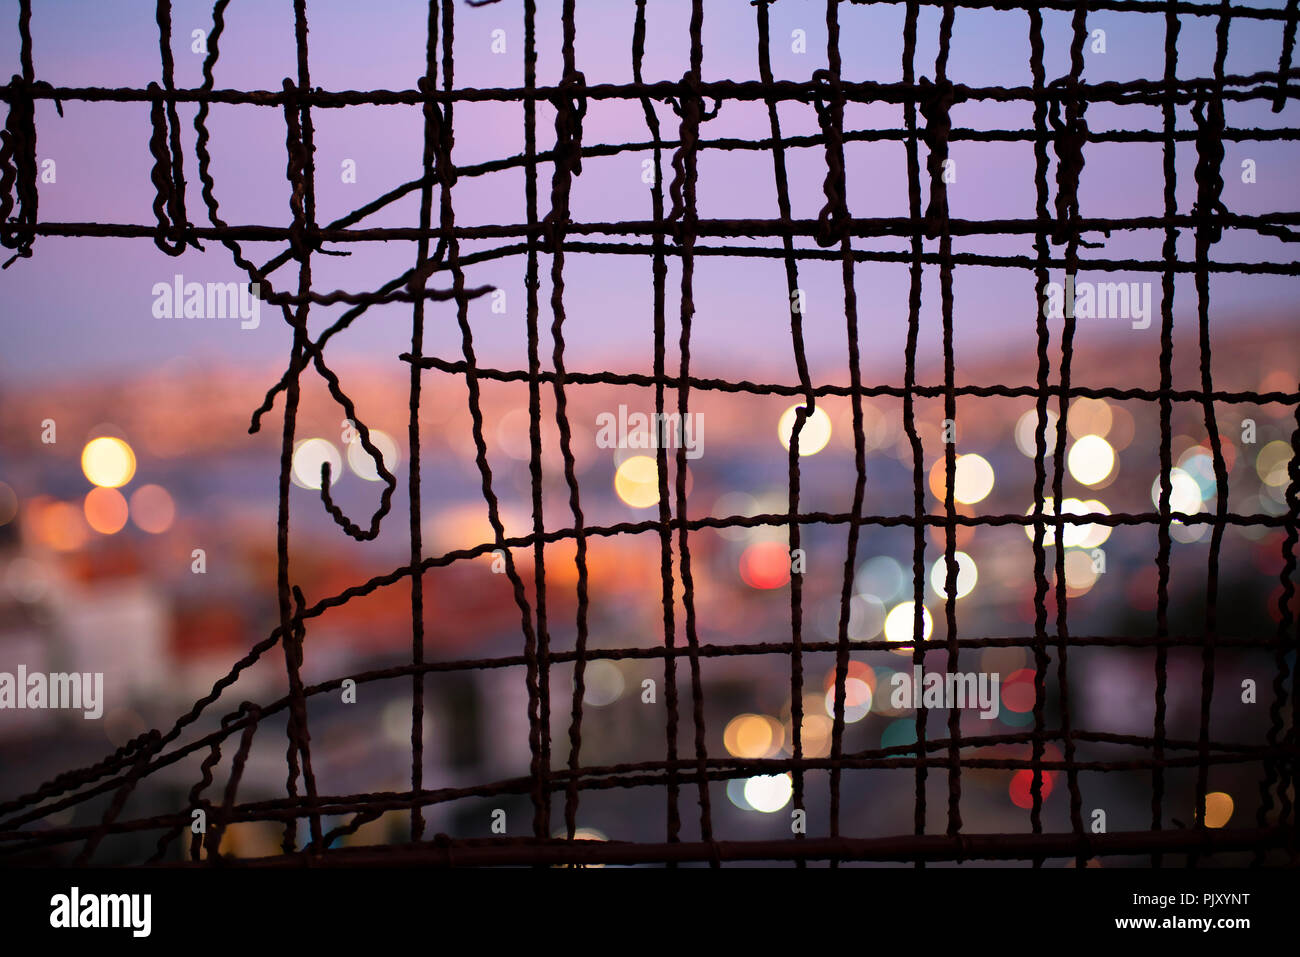 Blurry close up of Valparaiso during dusk through a wire fence. Urban abstract, city view with bokeh lights, wire fence patterns. Valparaiso, Chile - Stock Image